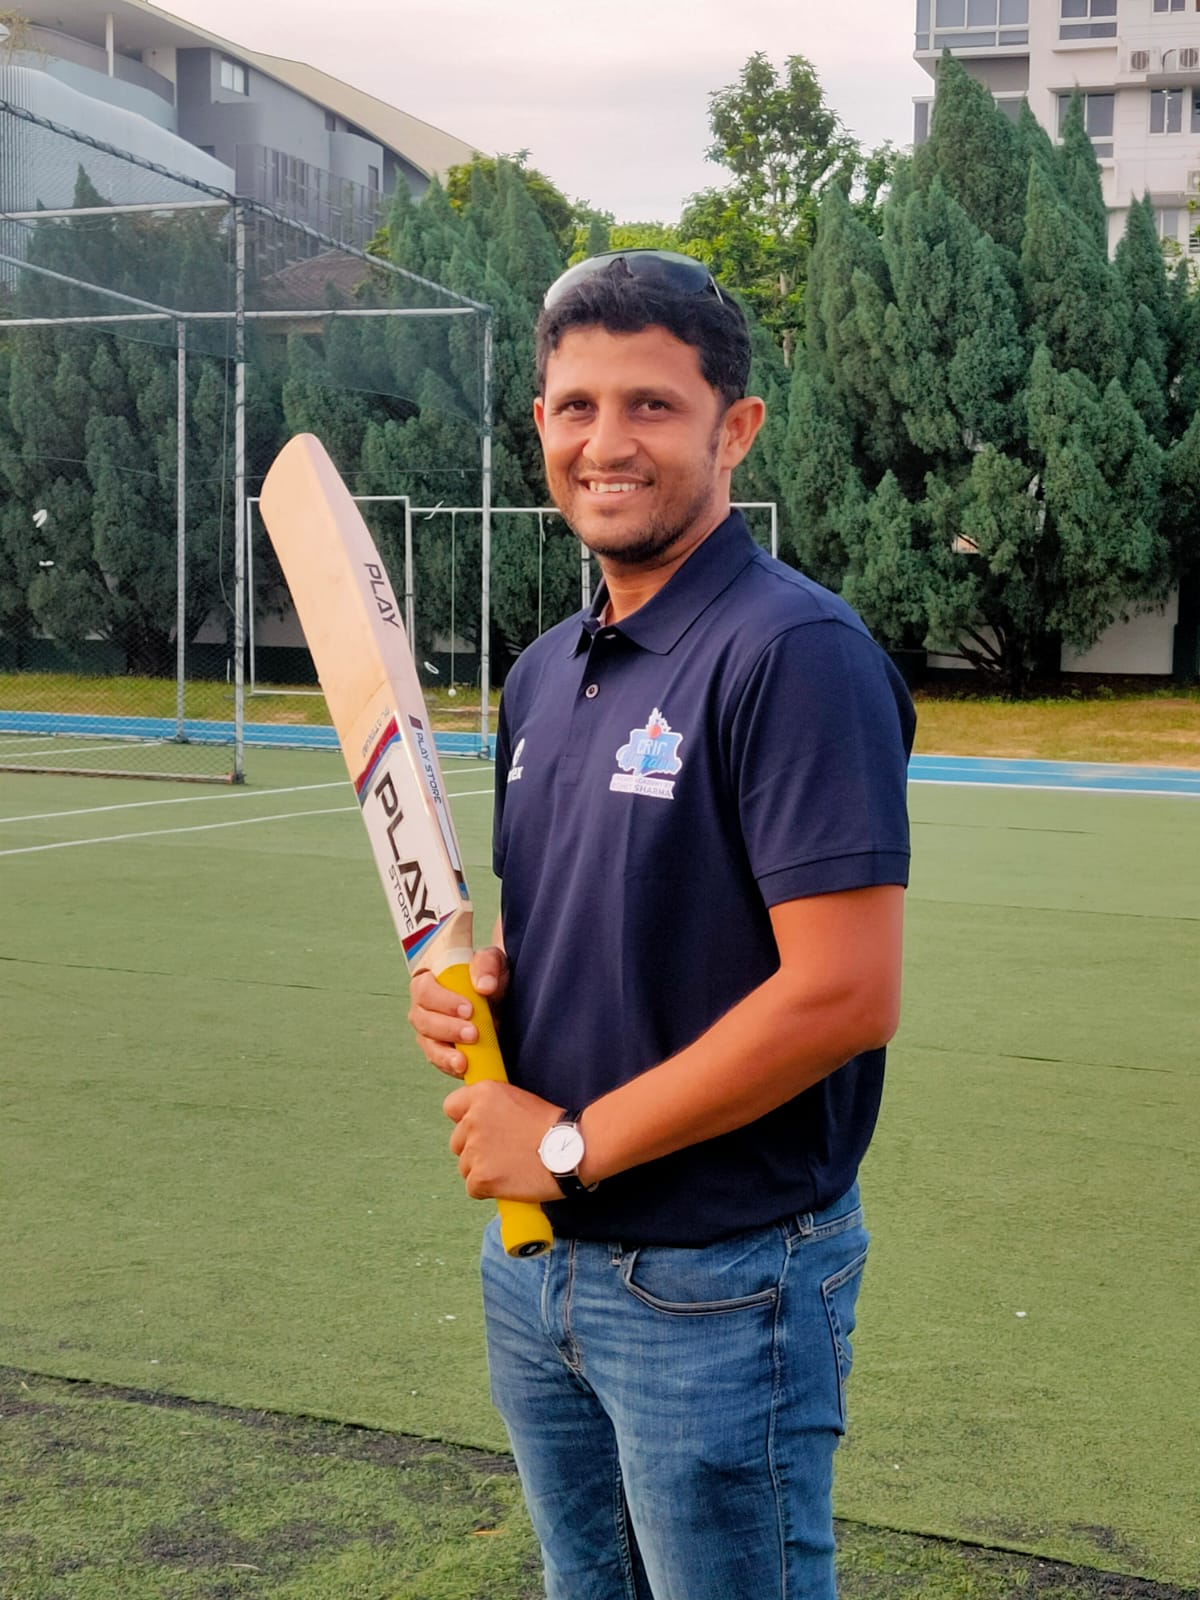 Chetan Suryawanshi has led Singapore's National Cricket team and seen the island nation rise from a ranking which was in 90's to the current ranking in the 20's . Photo: Connected to India